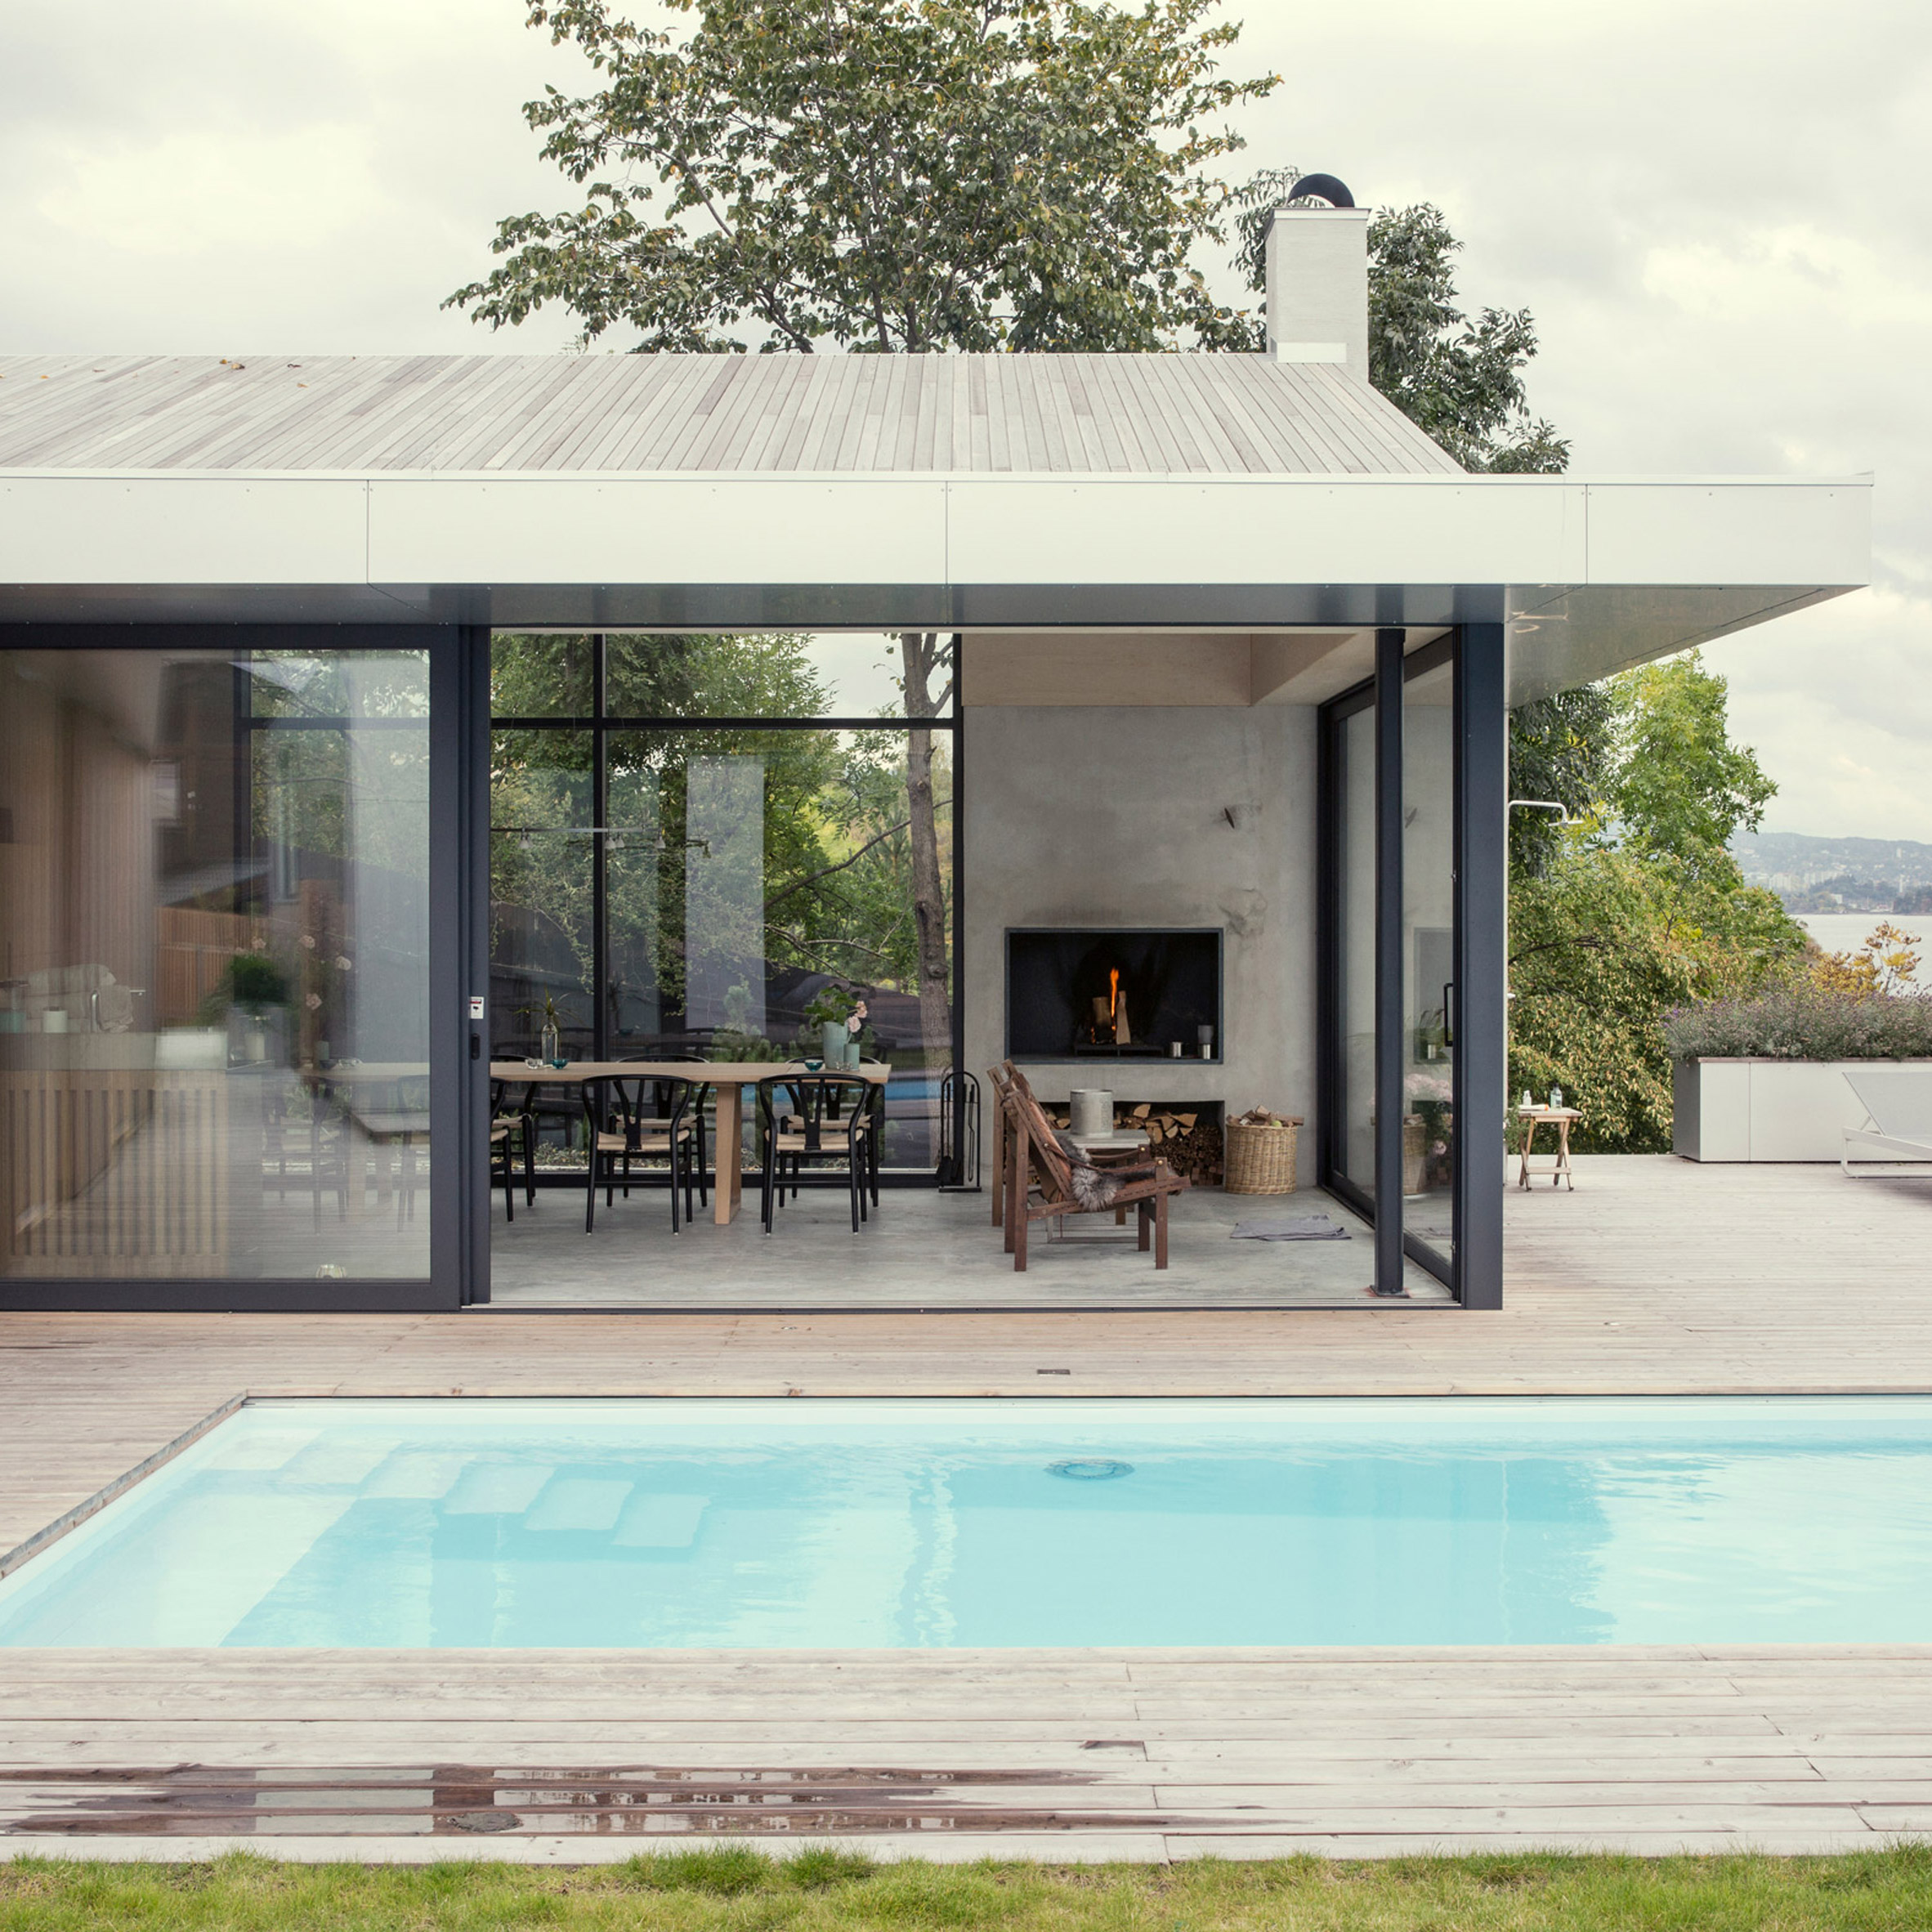 Indoor pool einfamilienhaus  Swimming pool design and architecture | Dezeen